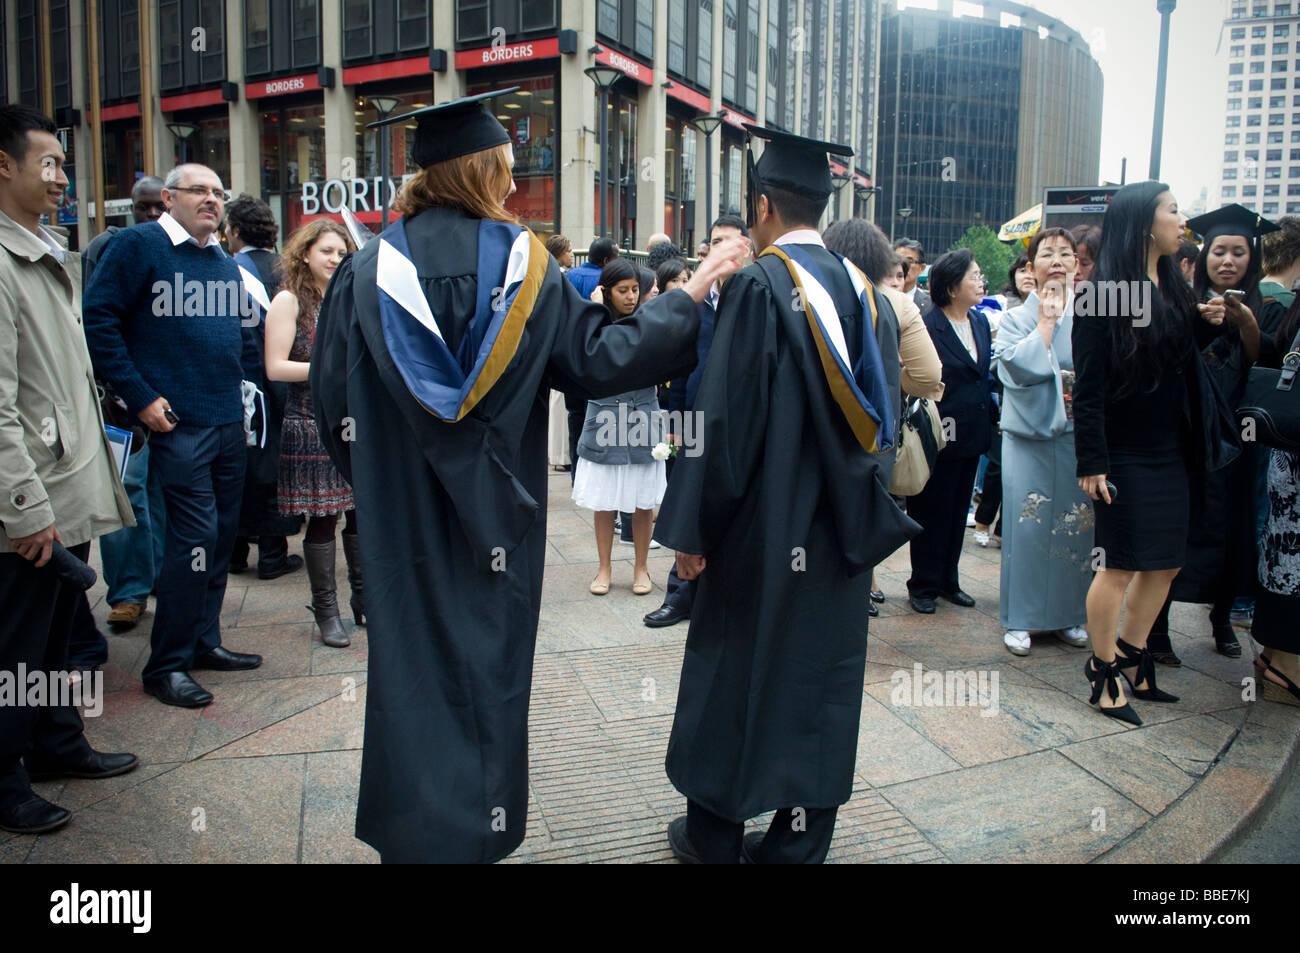 Crowds At The Graduation Stock Photos Crowds At The Graduation Stock Images Alamy